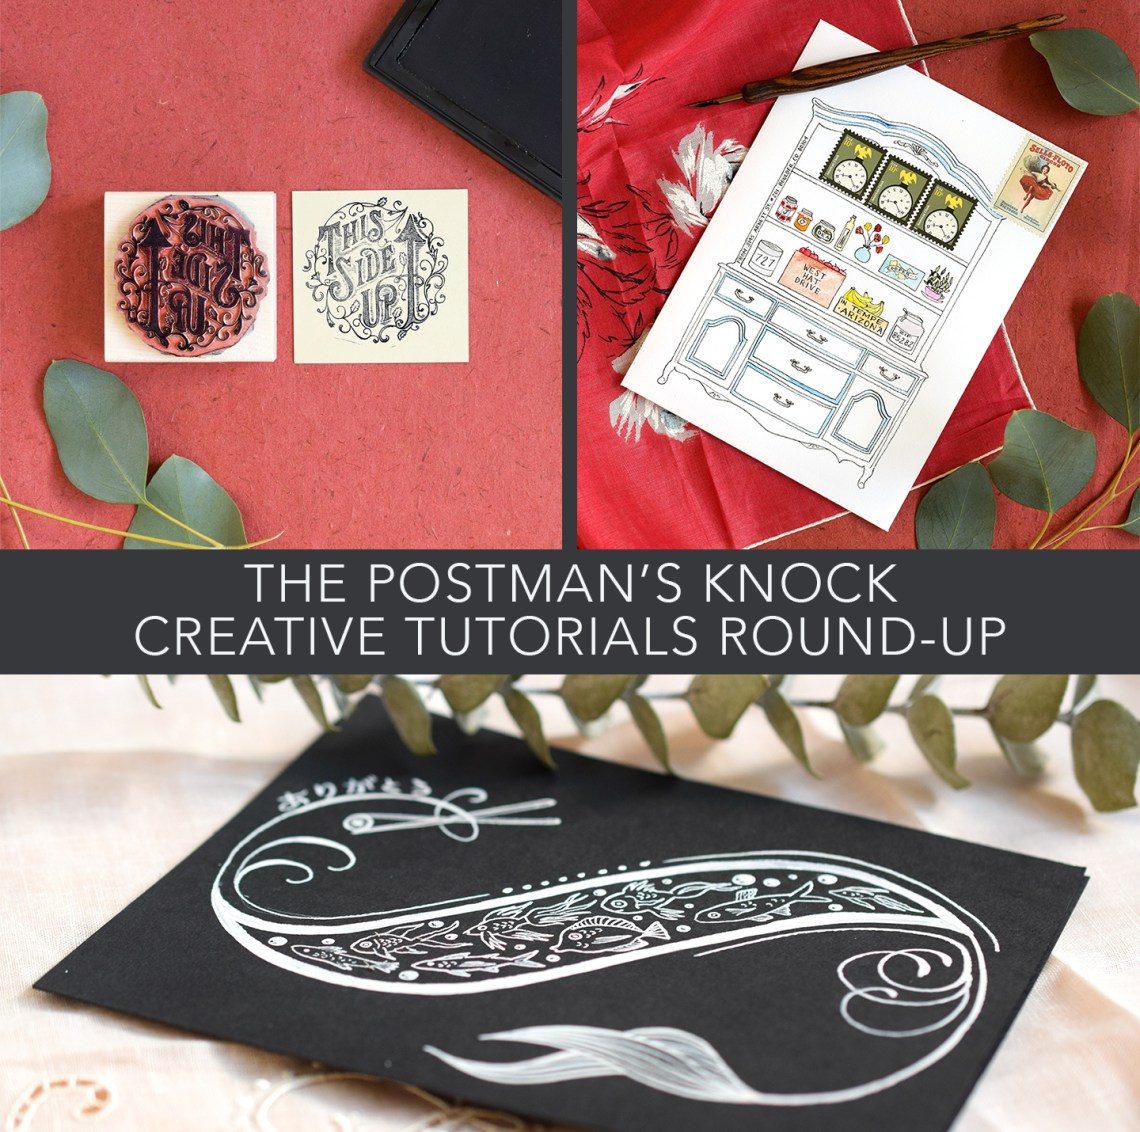 TPK Facebook Creative Tutorials Round-Up | The Postman's Knock